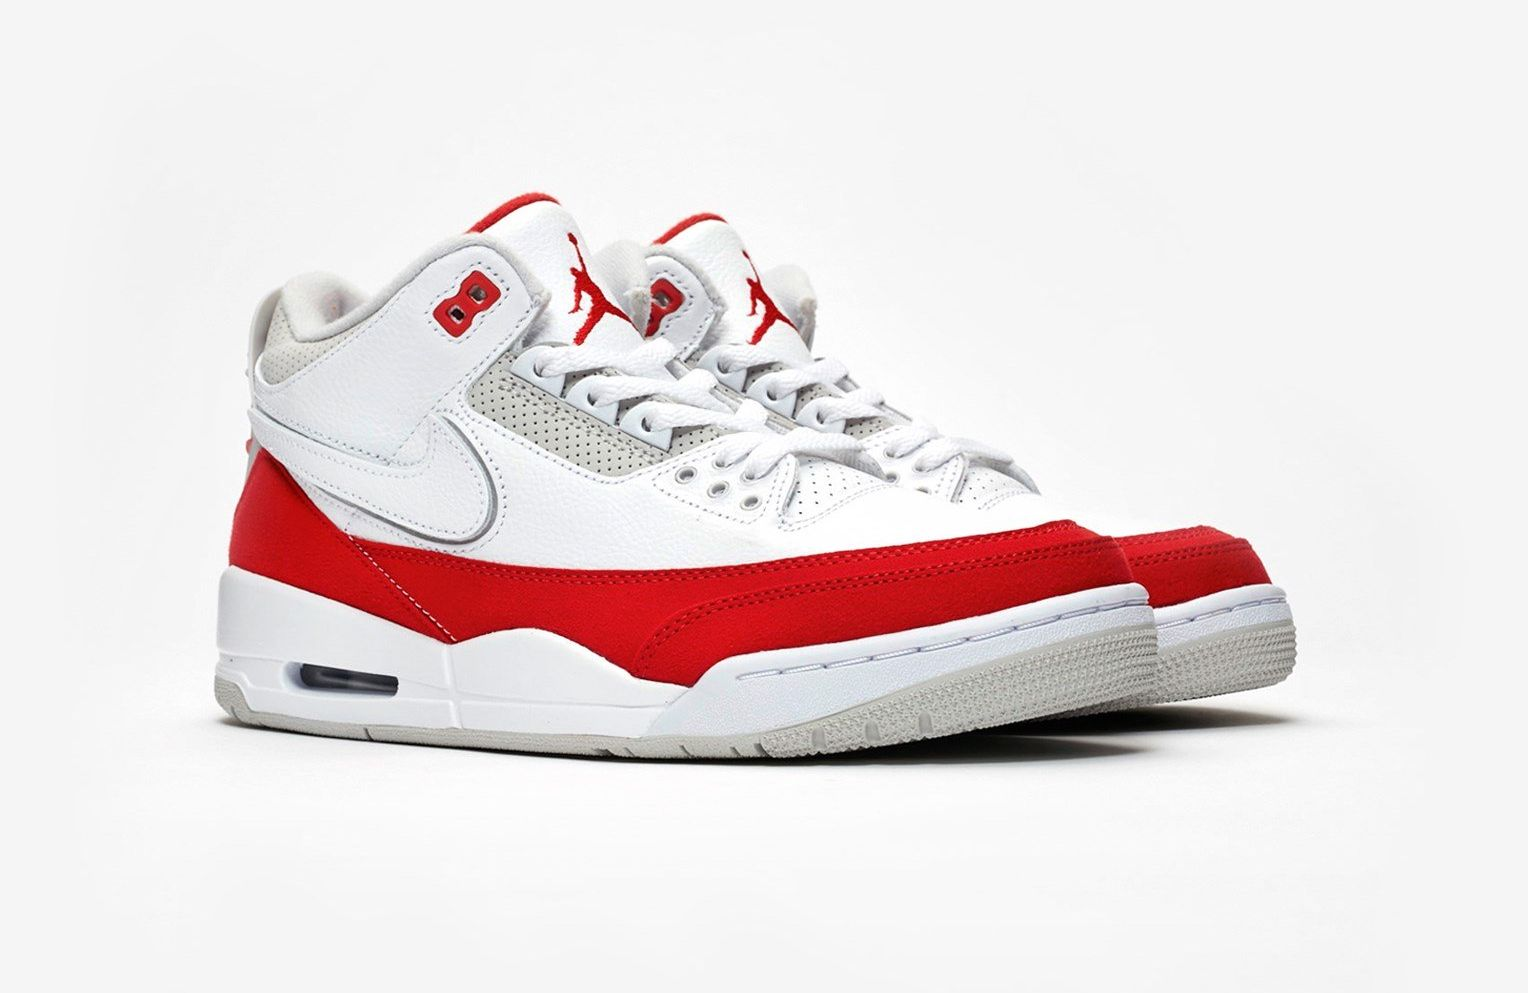 Air Jordan 3 Tinker Hatfield Air Max 1 Angled